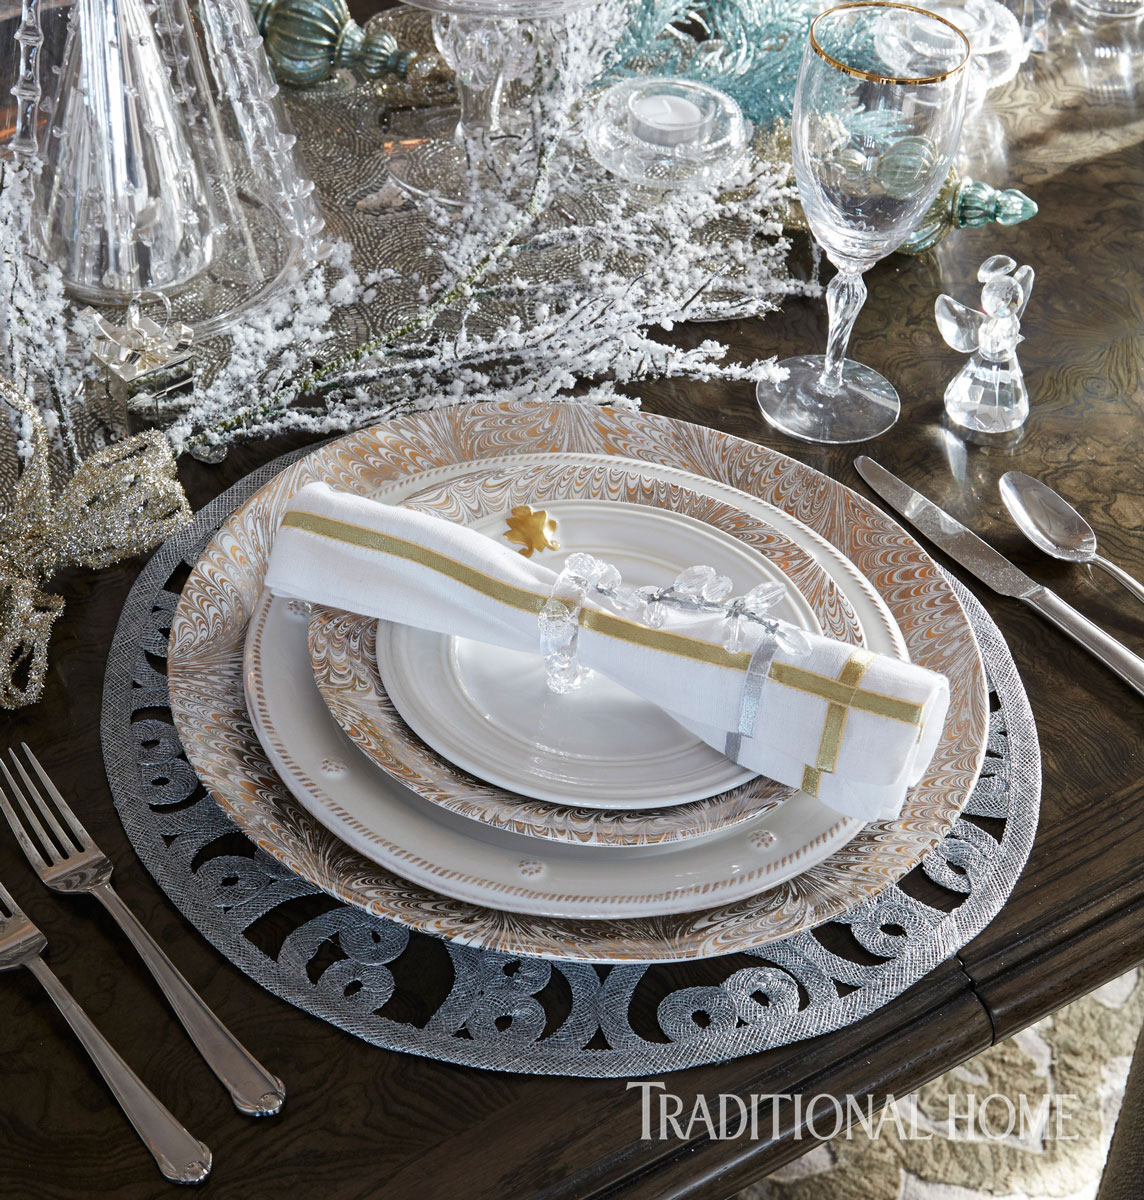 An assembly of Juliska\u0027s clear glass trees introduce added shine to this stylish table setting. Icy embellishments\u2014note the beaded branches silver placemat ... & Set with Style: Holiday Tabletop Inspiration | Traditional Home